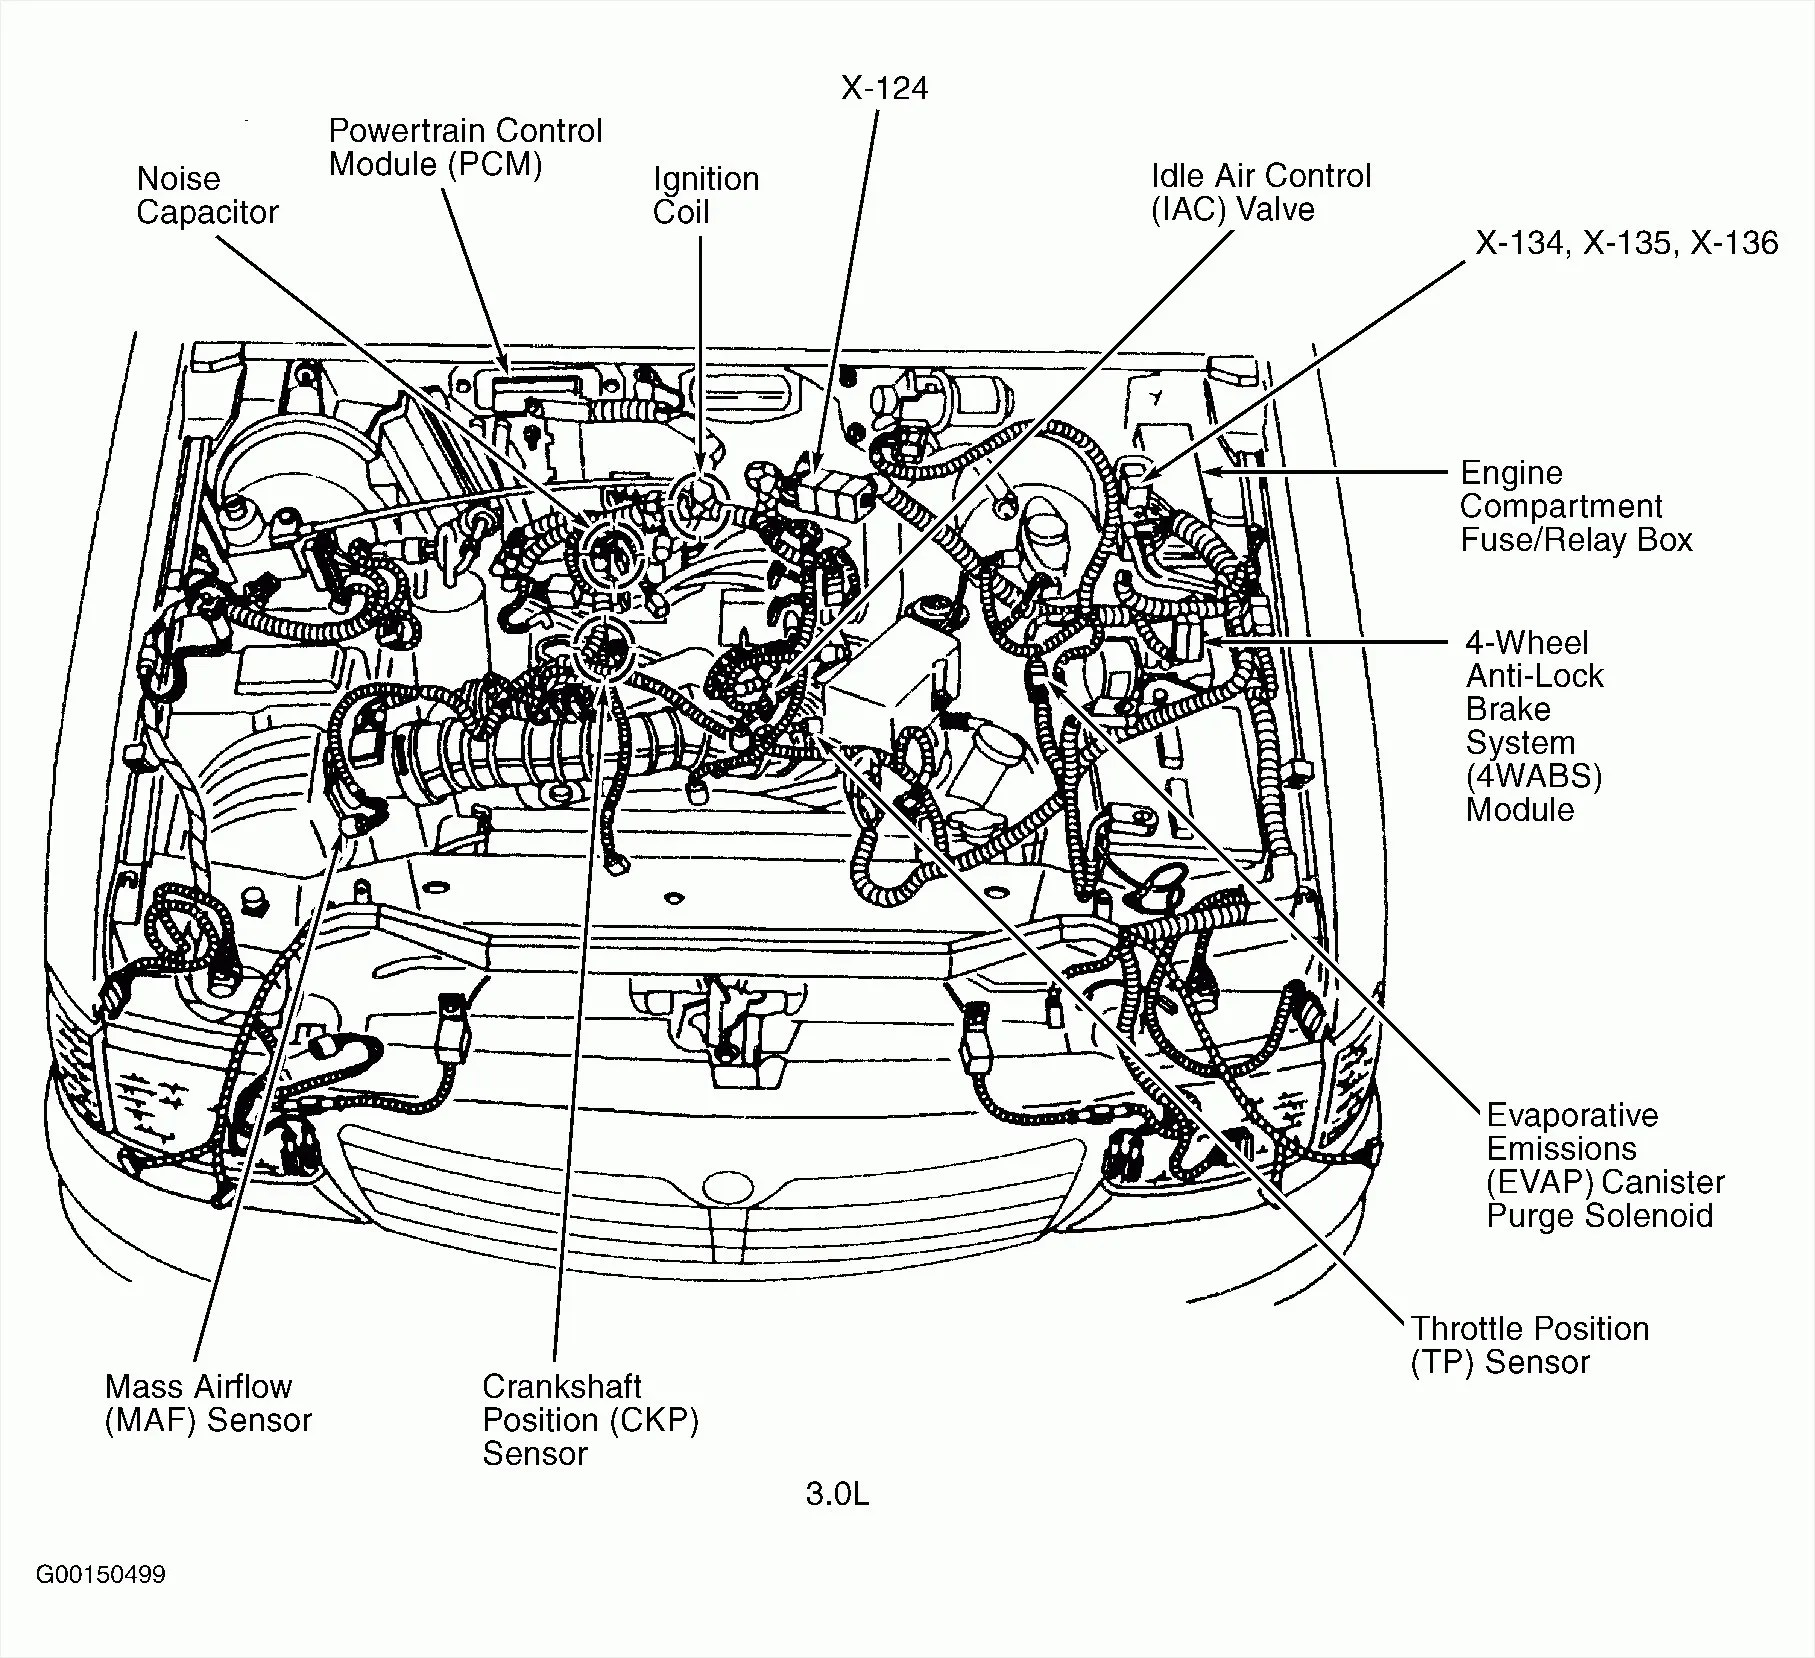 hight resolution of 1995 dodge intrepid engine diagram wiring diagram expert 1995 dodge intrepid engine diagram